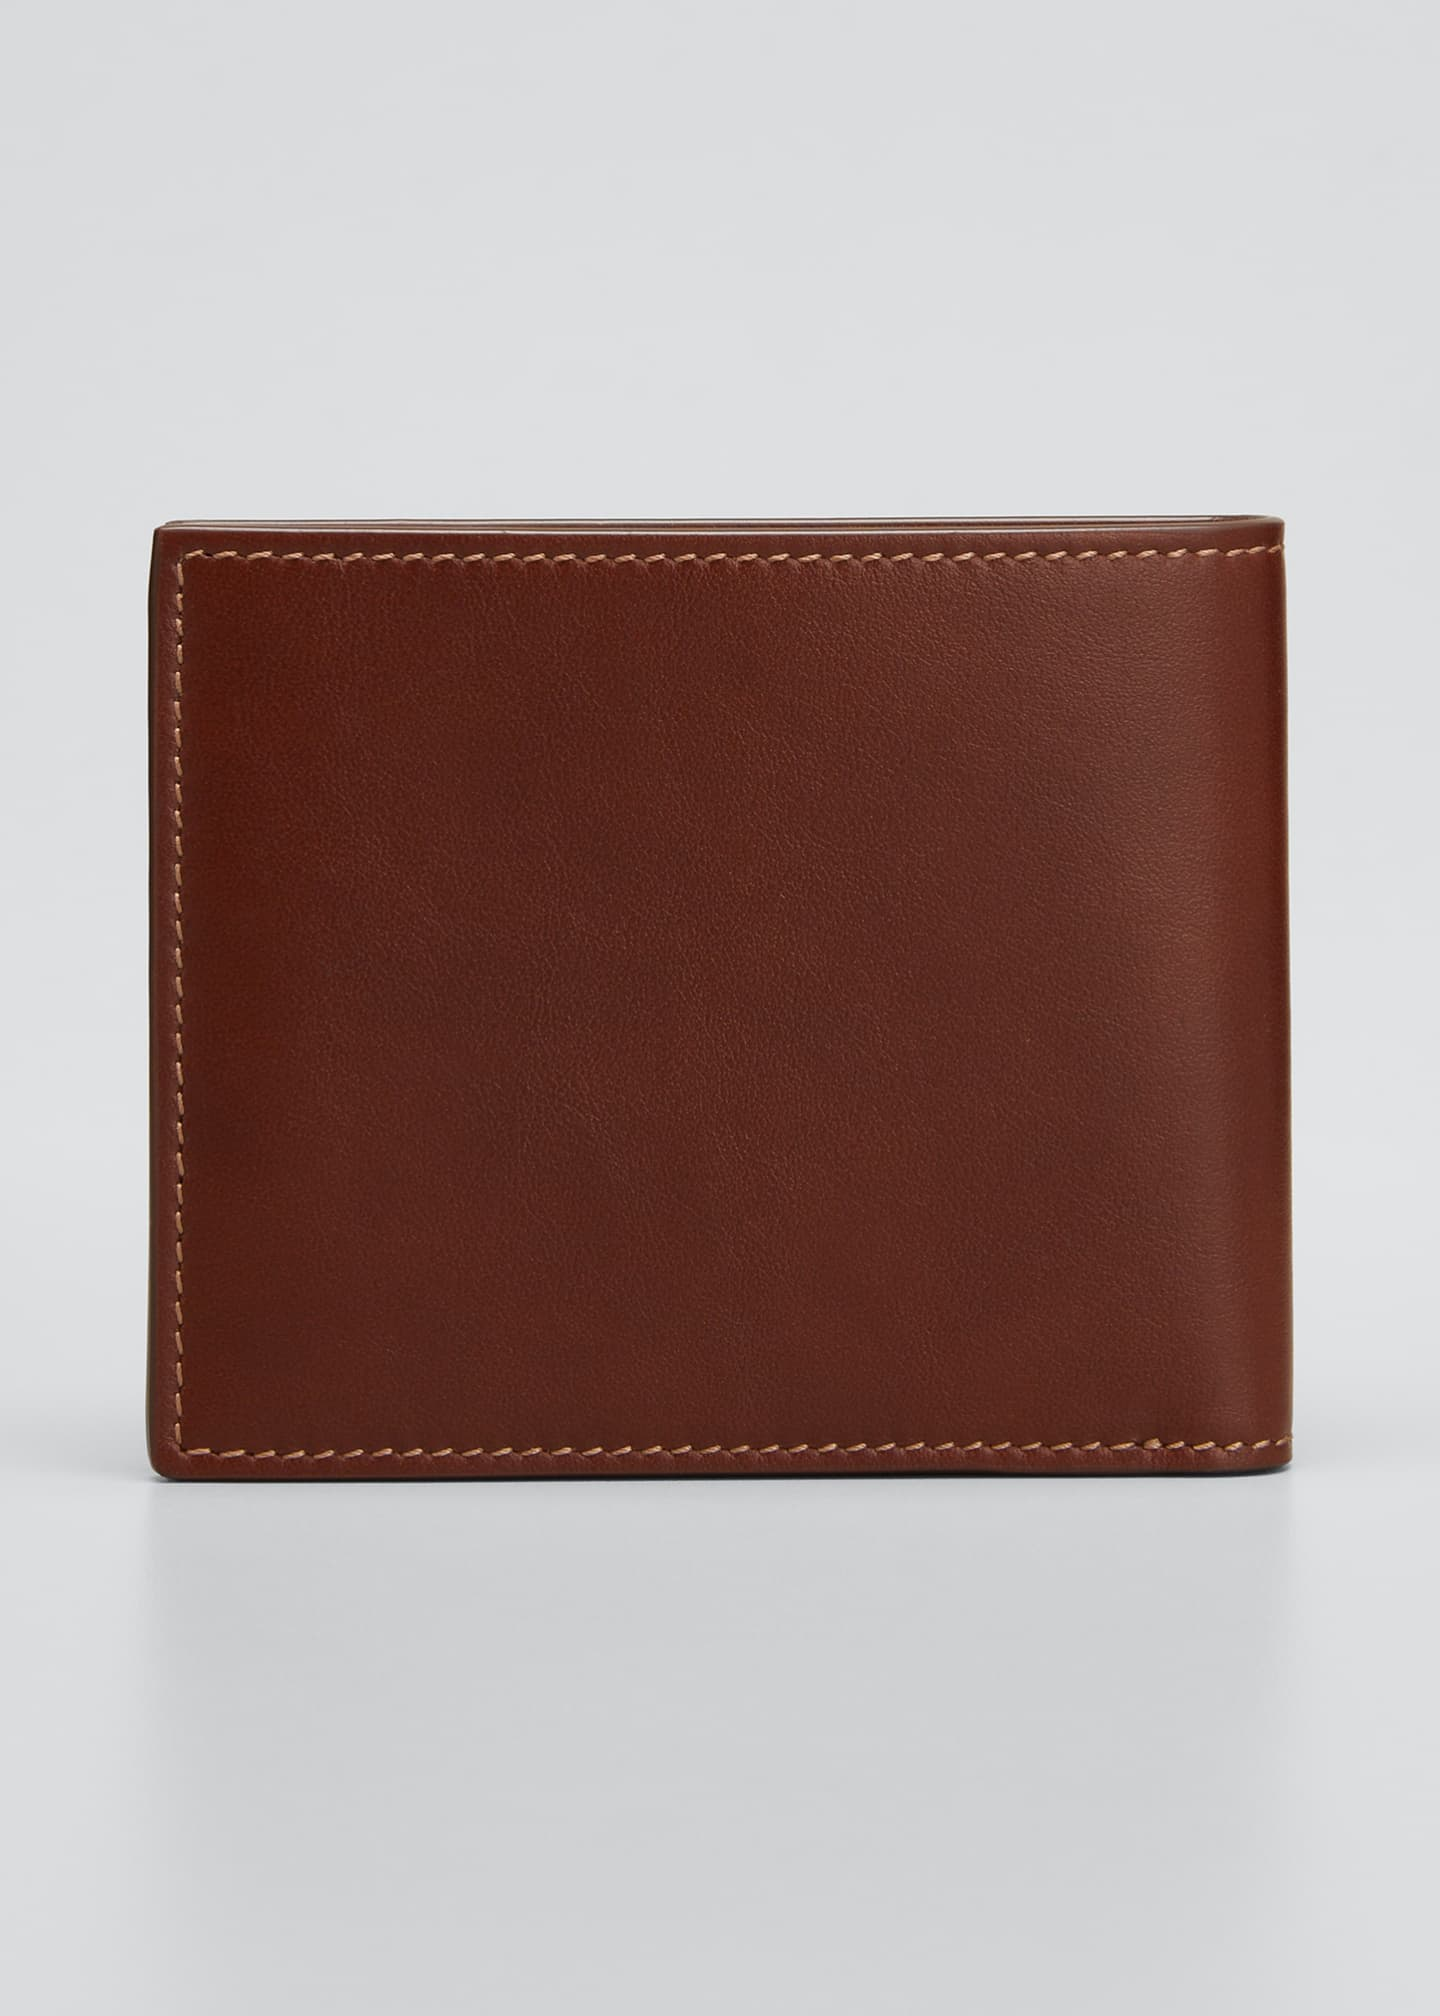 Image 3 of 3: Men's Leather Bi-Fold Wallet with Stitching